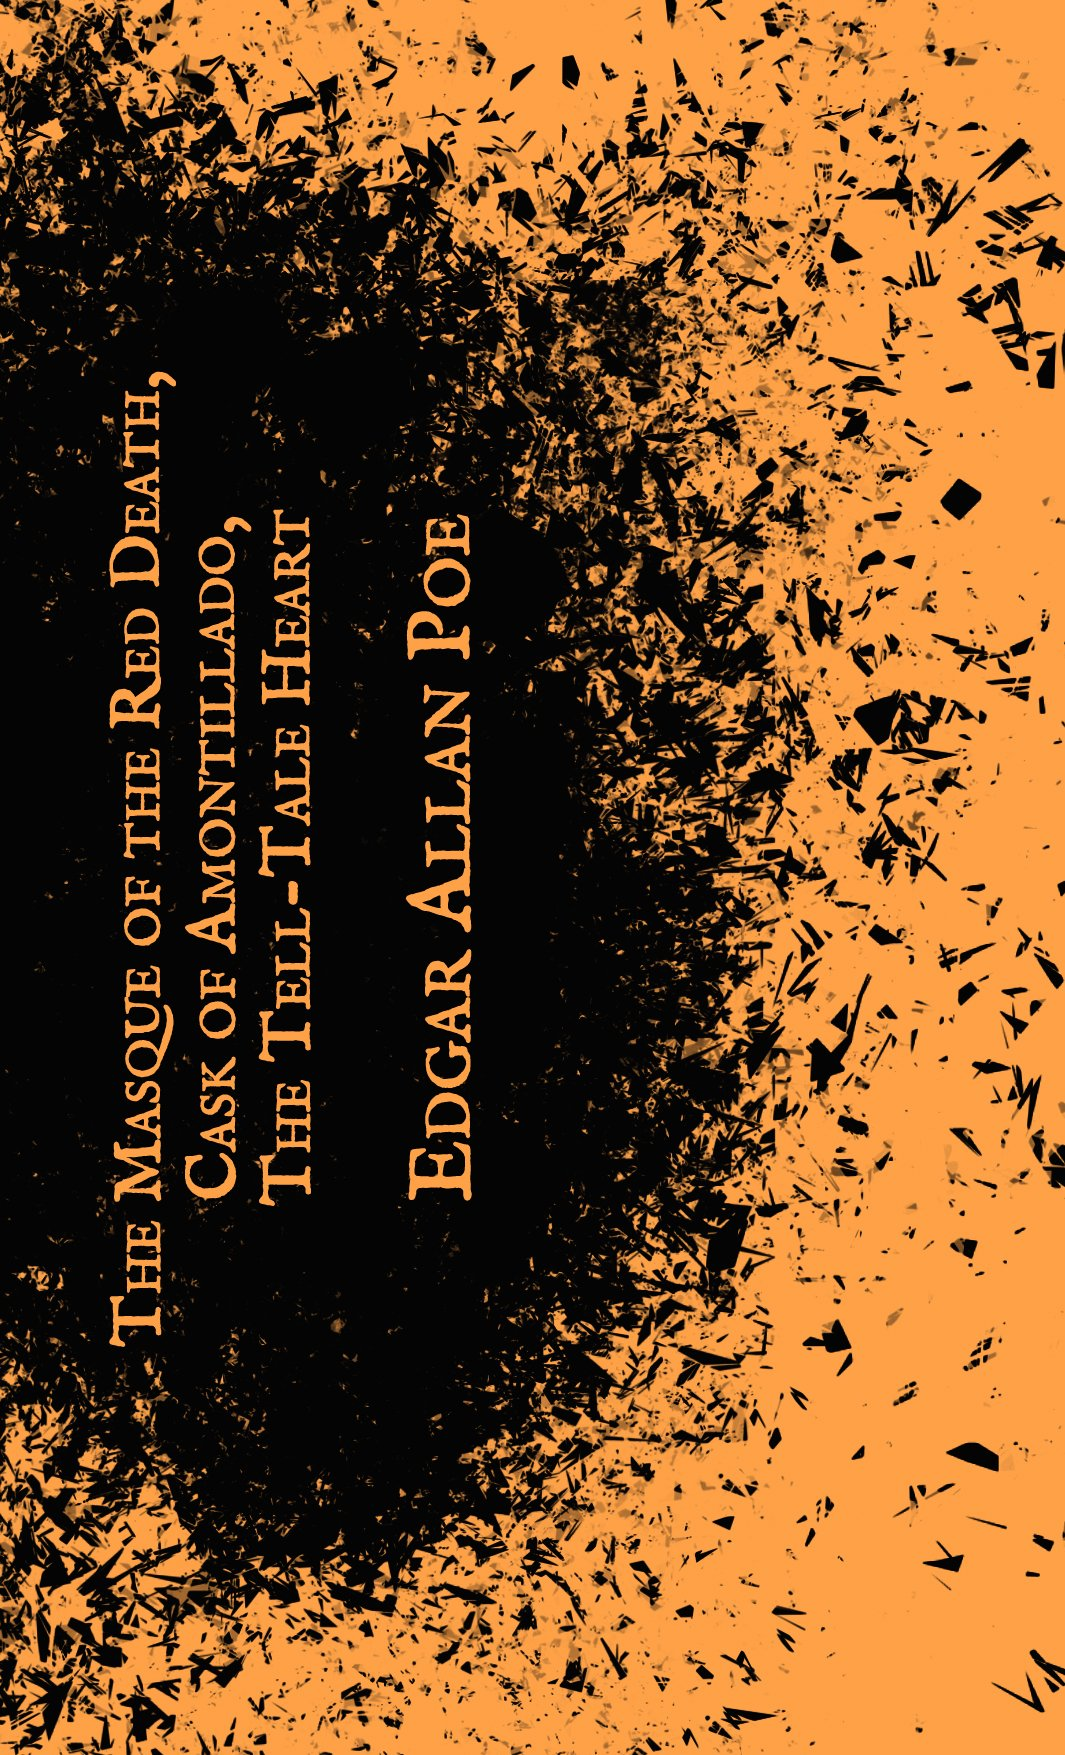 The Masque of the Red Death, Cask of Amontillado & The Tell-Tale Heart, Poe, Edgar Allan